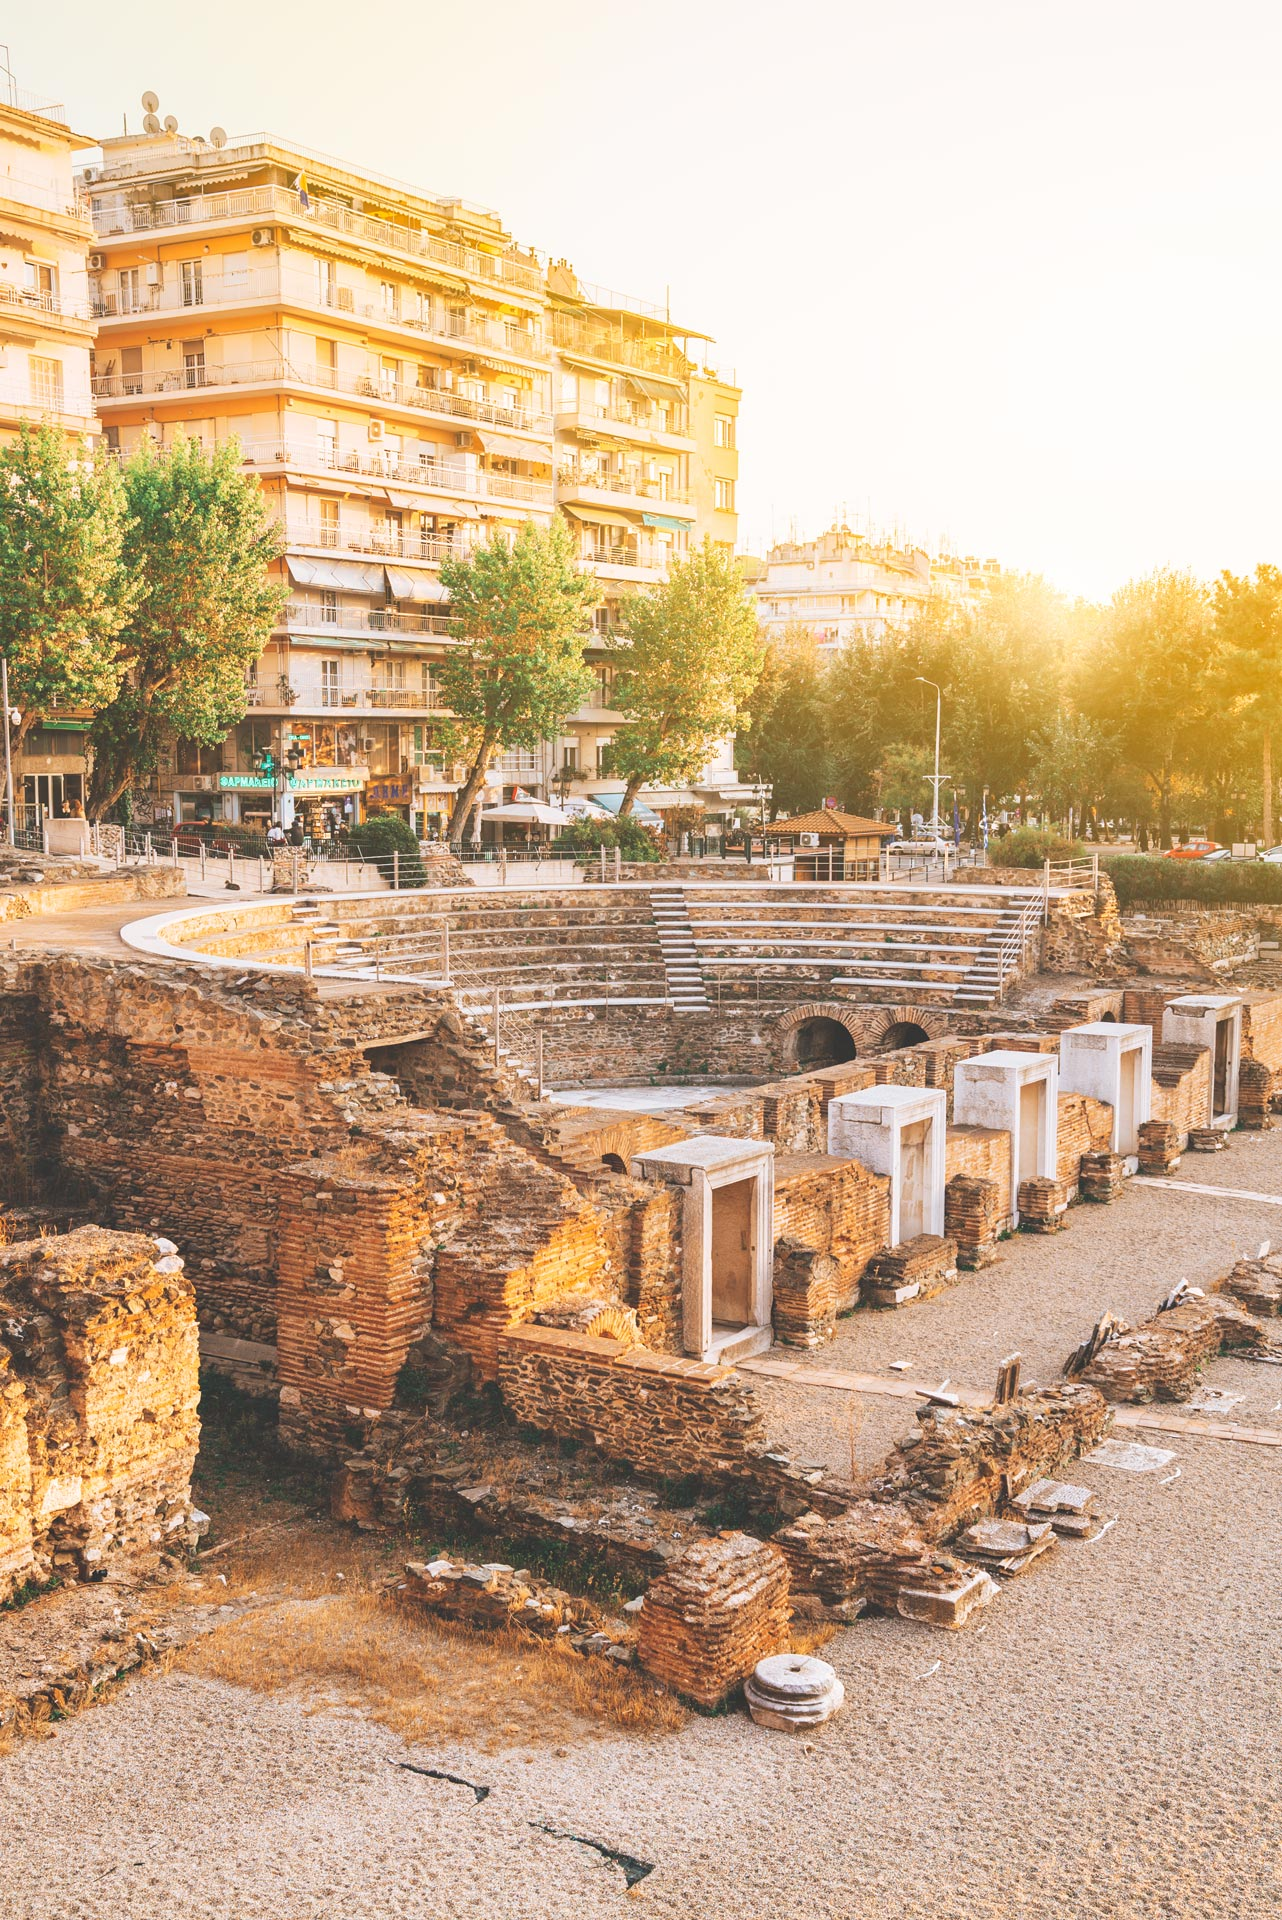 The Roman Agora of Thessaloniki